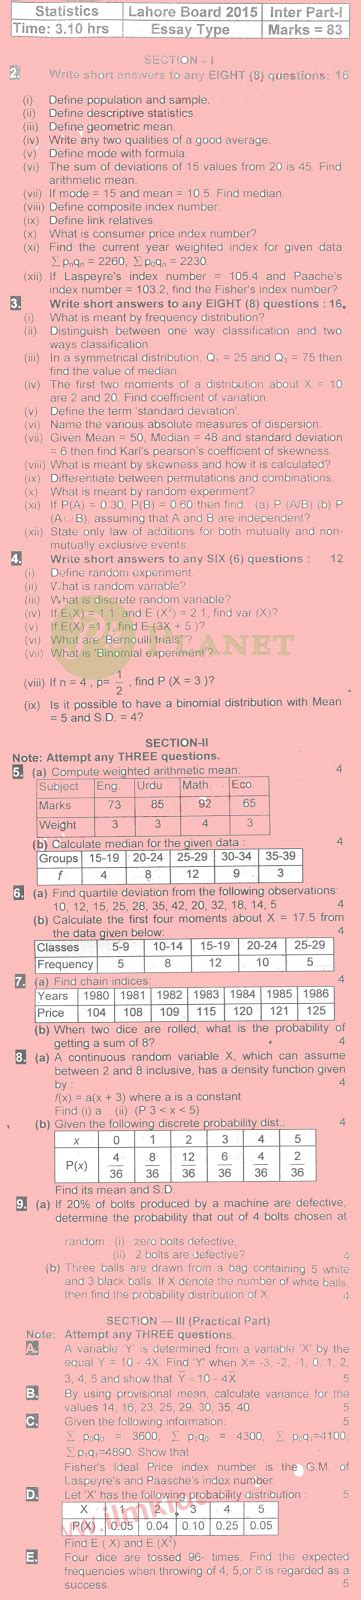 statistics section ii part a questions 1 5 answers past papers of statistics inter part 1 lahore board 2015